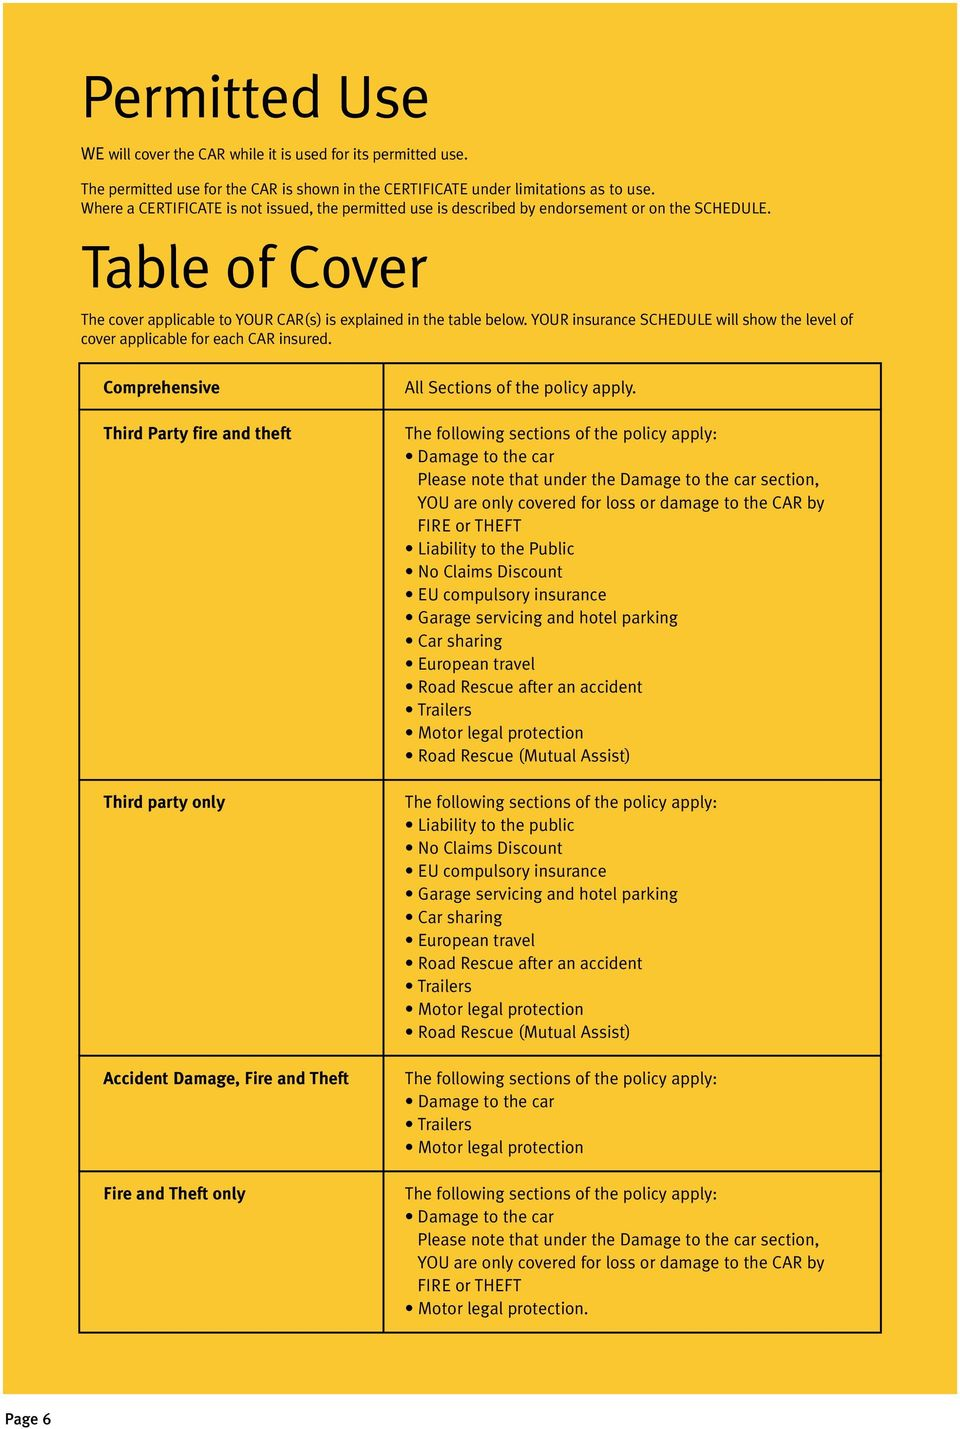 YOUR insurance SCHEDULE will show the level of cover applicable for each CAR insured.